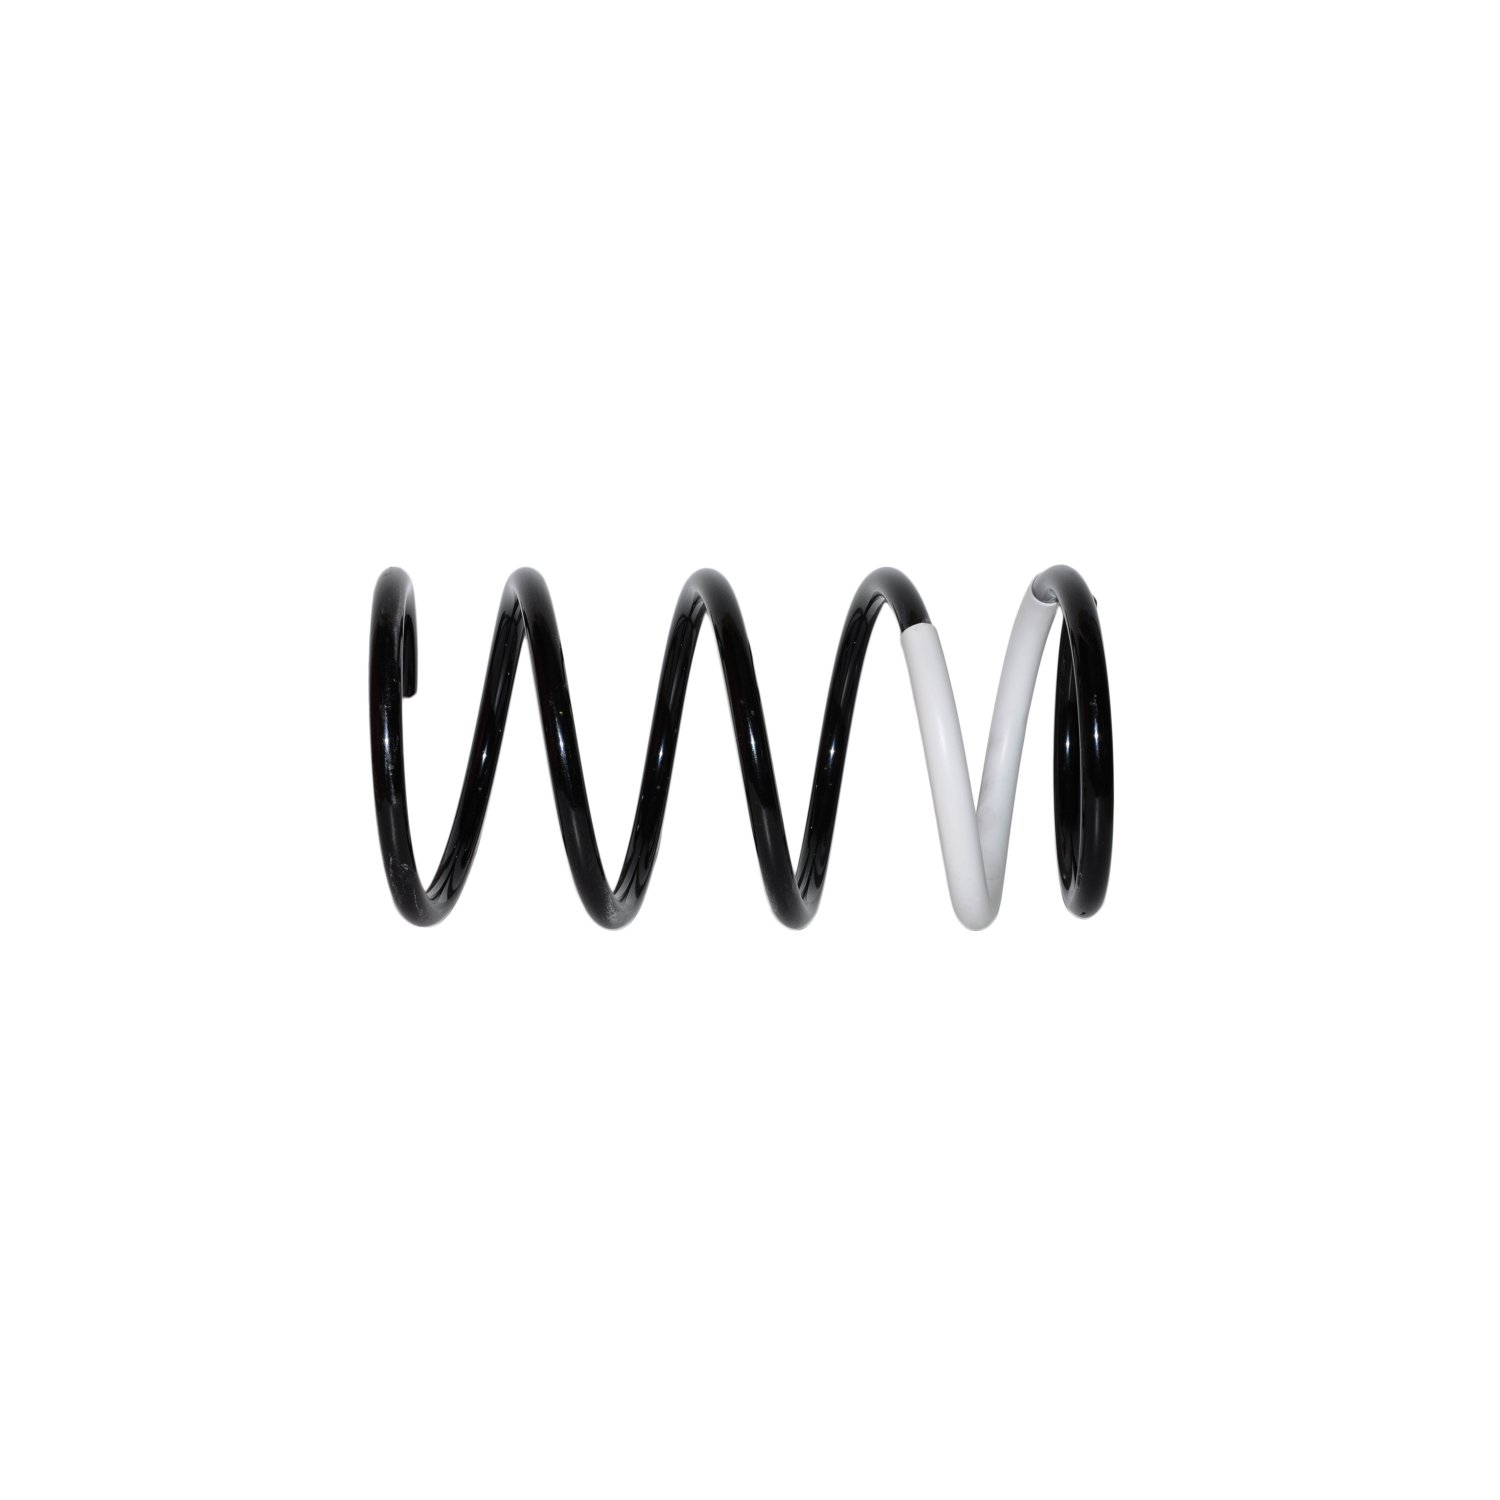 Pack of 1 Blue Print ADG088350 coil spring